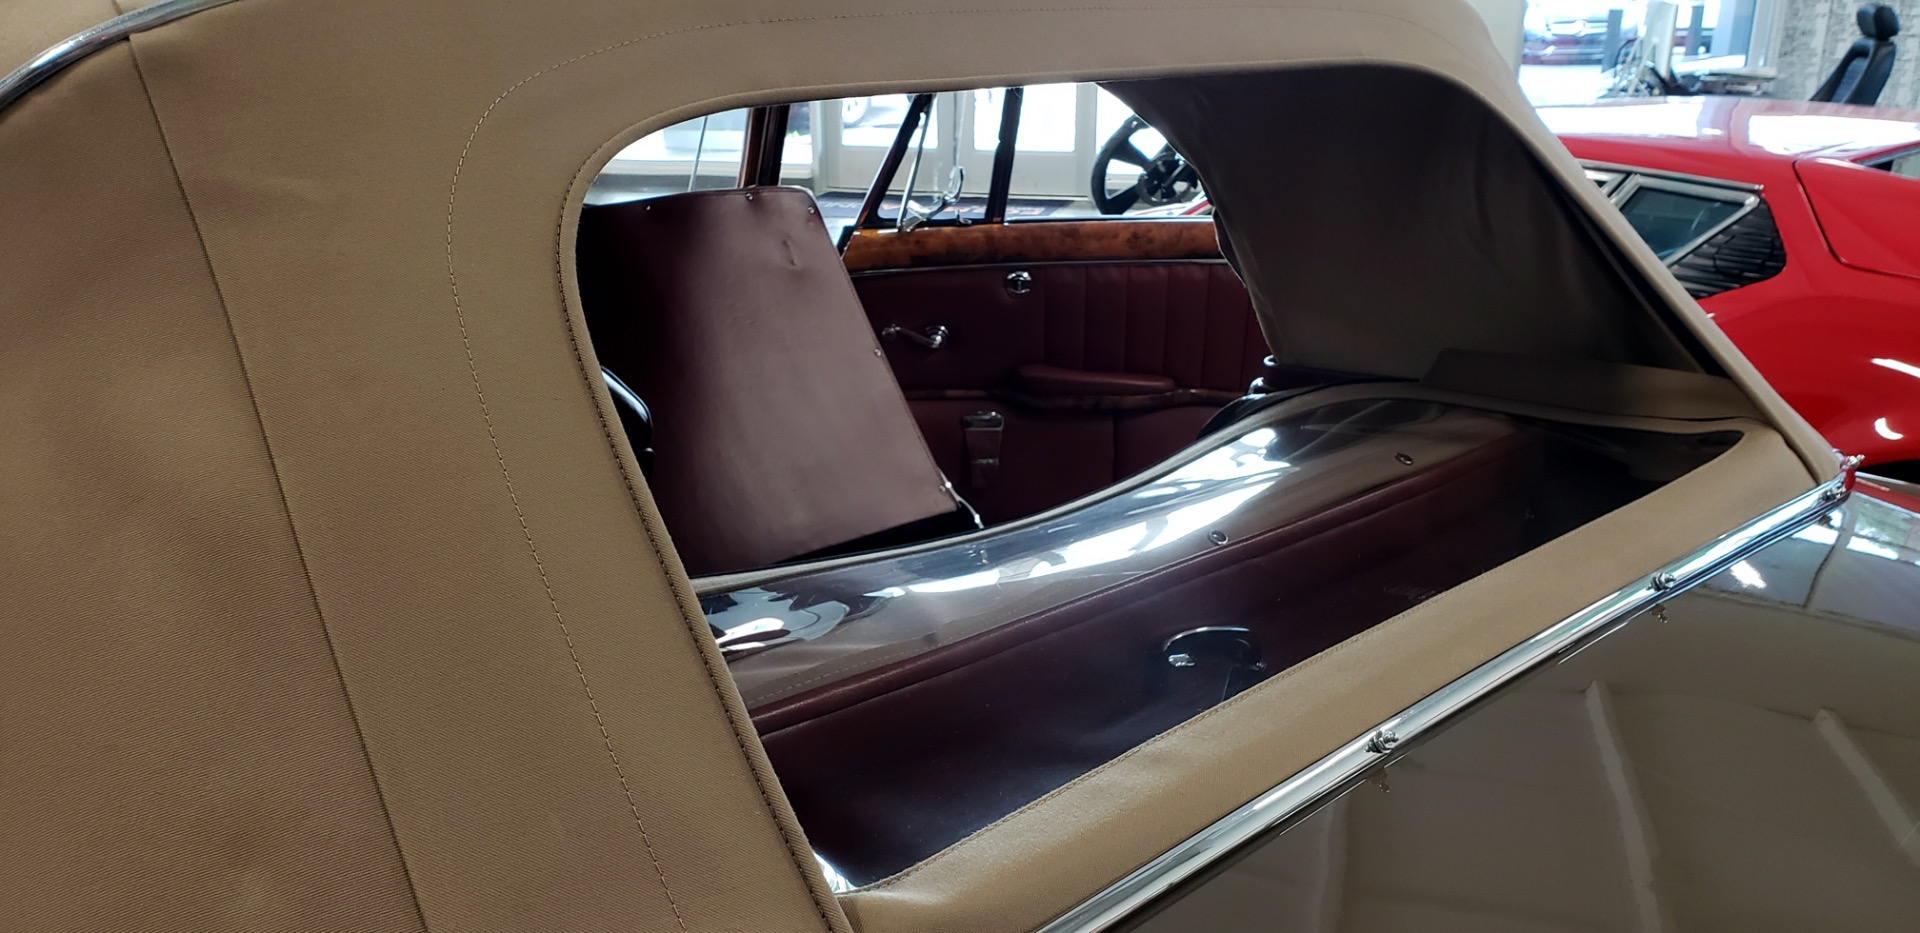 Used 1957 Mercedes-Benz 220 S Cabriolet - Full Restoration for sale Sold at Formula Imports in Charlotte NC 28227 33